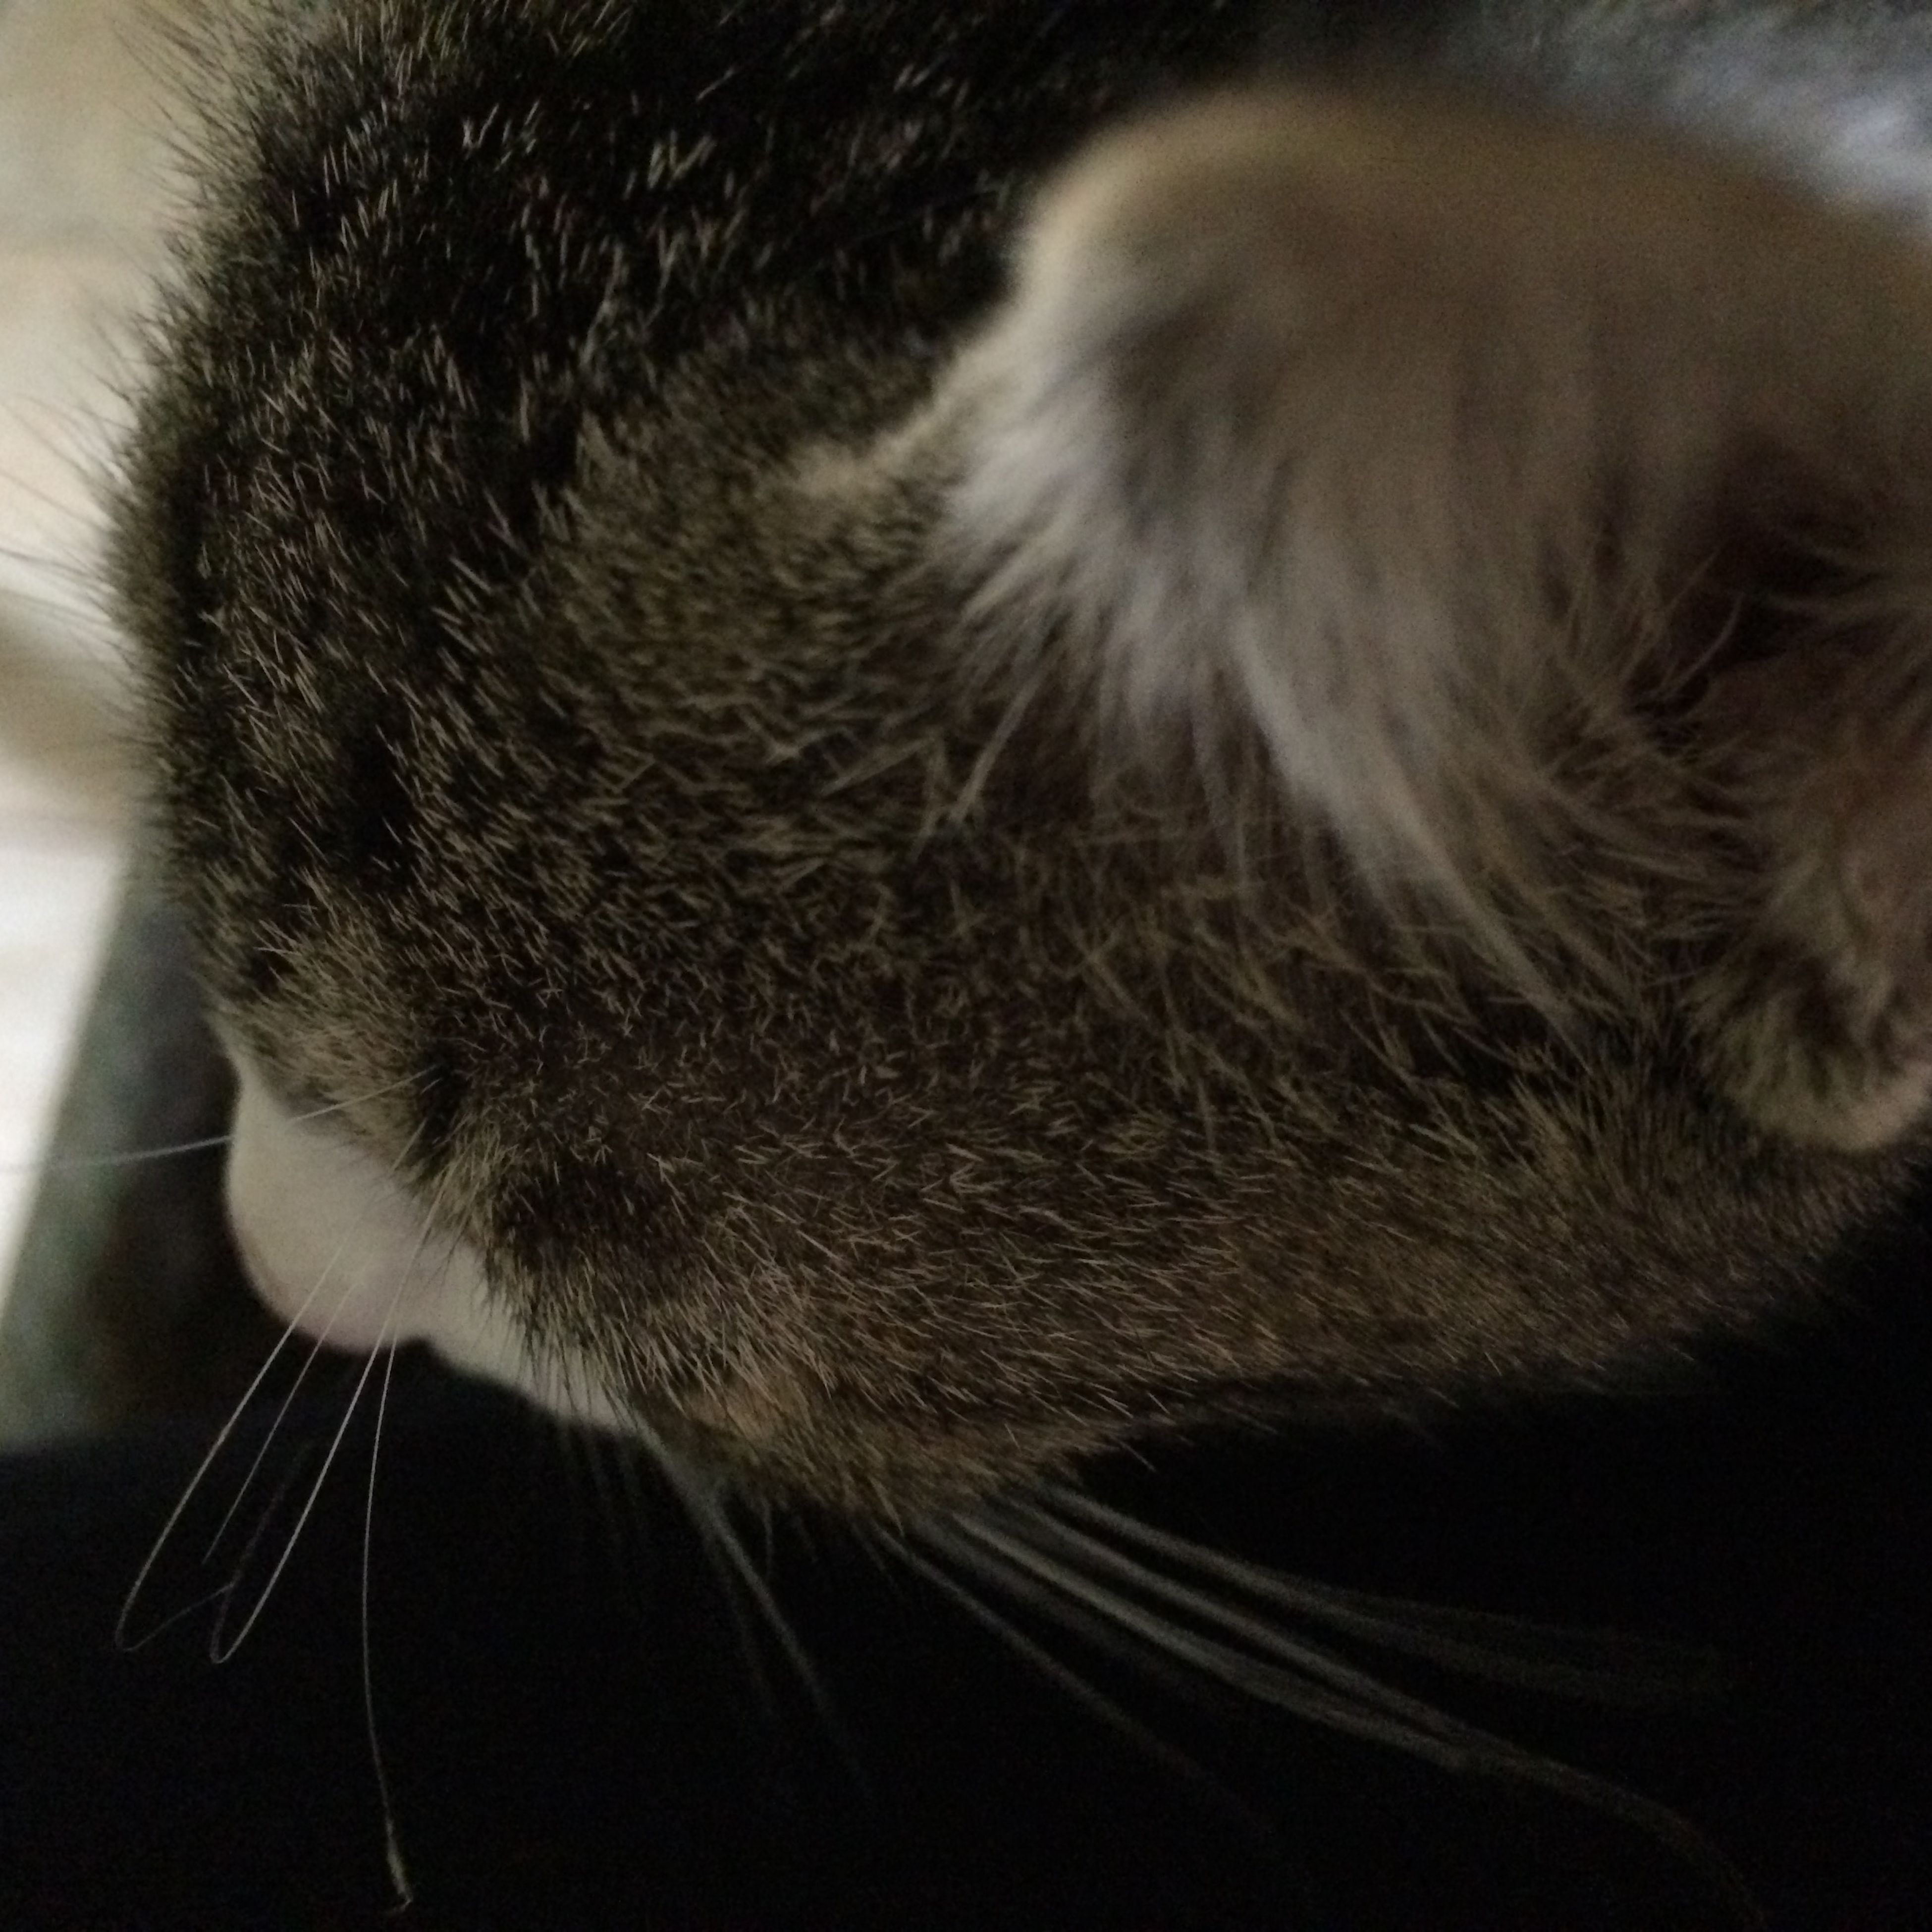 Cat♡ Milky Nose Morning MyPhotography IPhoneography Little Kitten